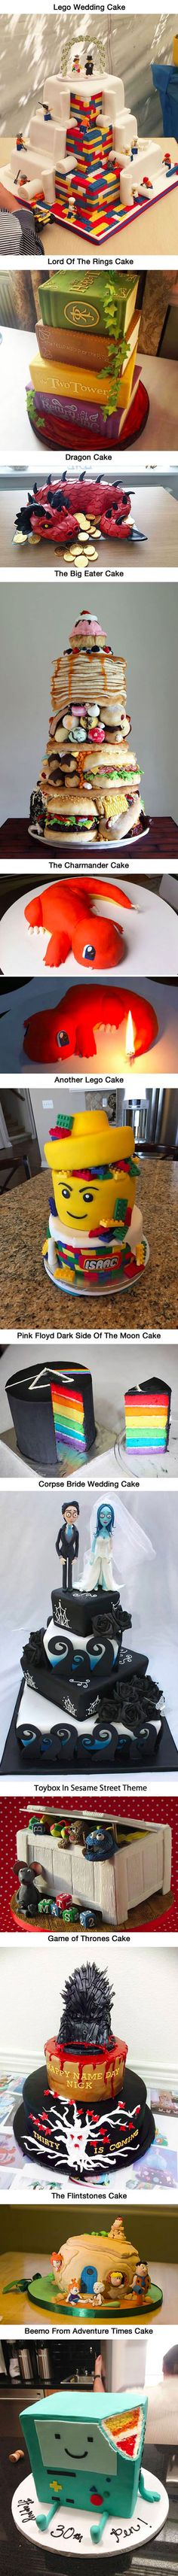 Cakes too cool to eat. Was the B-Mo cake actually Pendleton Ward's bday cake is he only in his 30s?